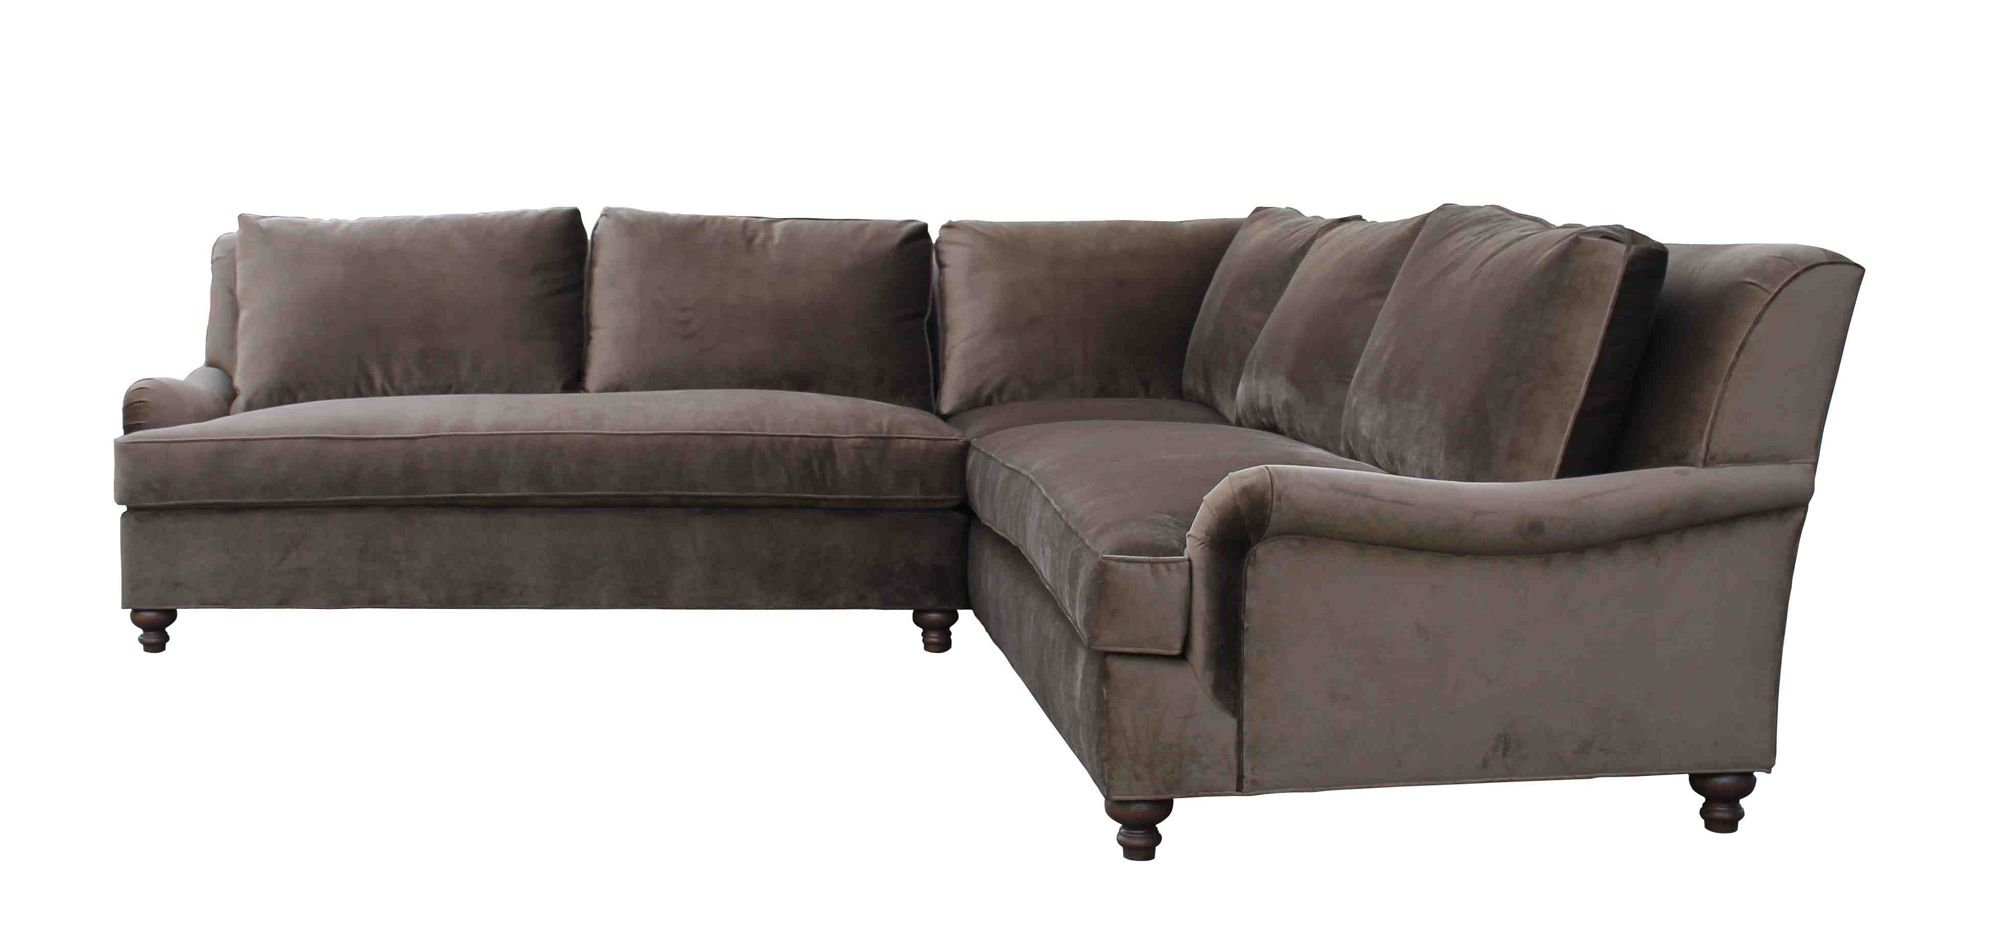 English Roll Arm Sofa Mart Springfield Illinois Rolled Sectional Bench Arms And